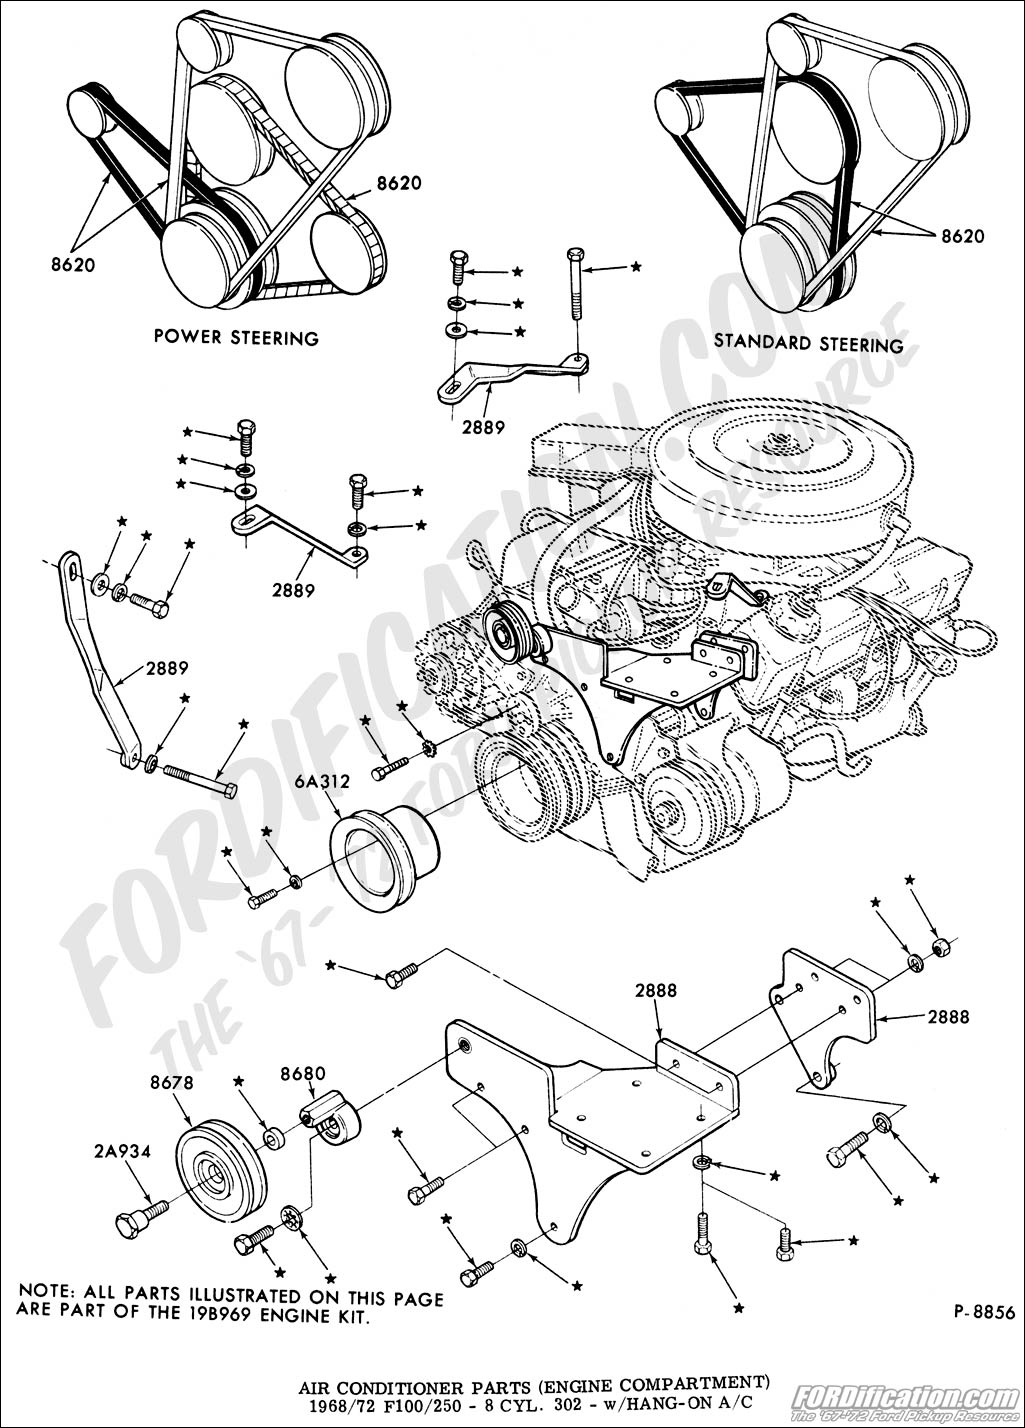 Ford Mustang 289 Engine Diagram Timing Specs